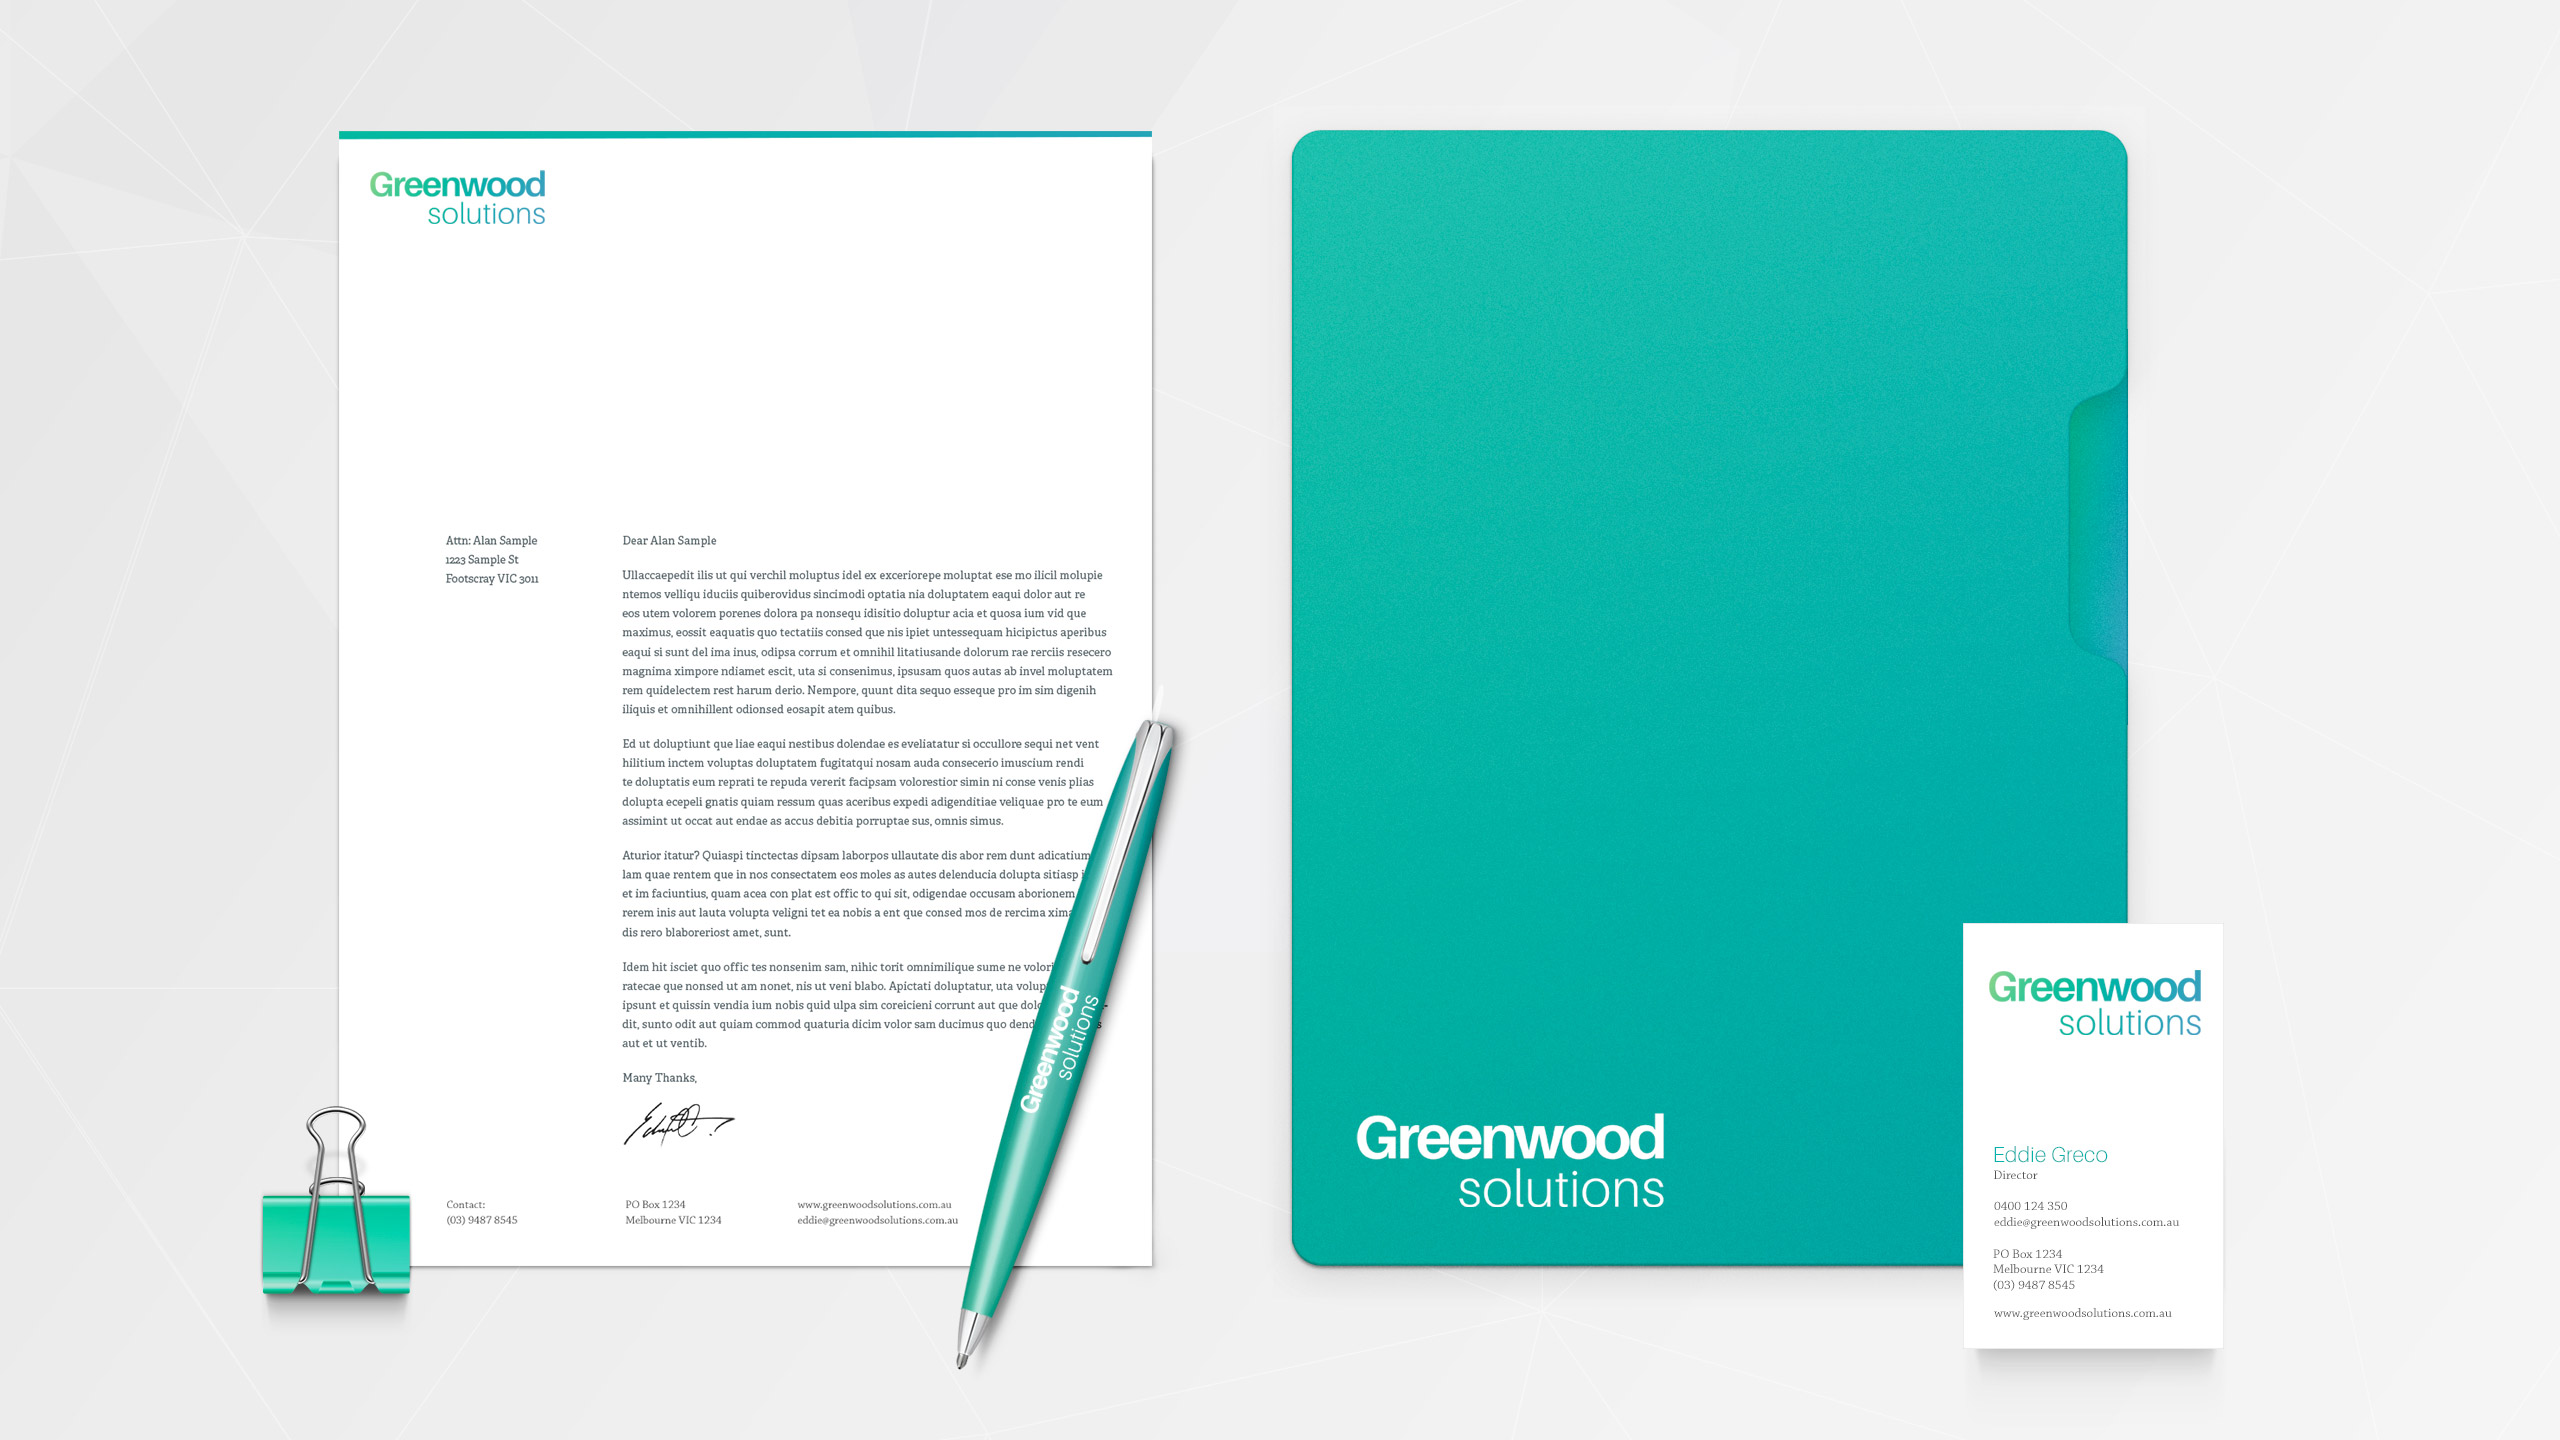 Greenwood Solutions Branding